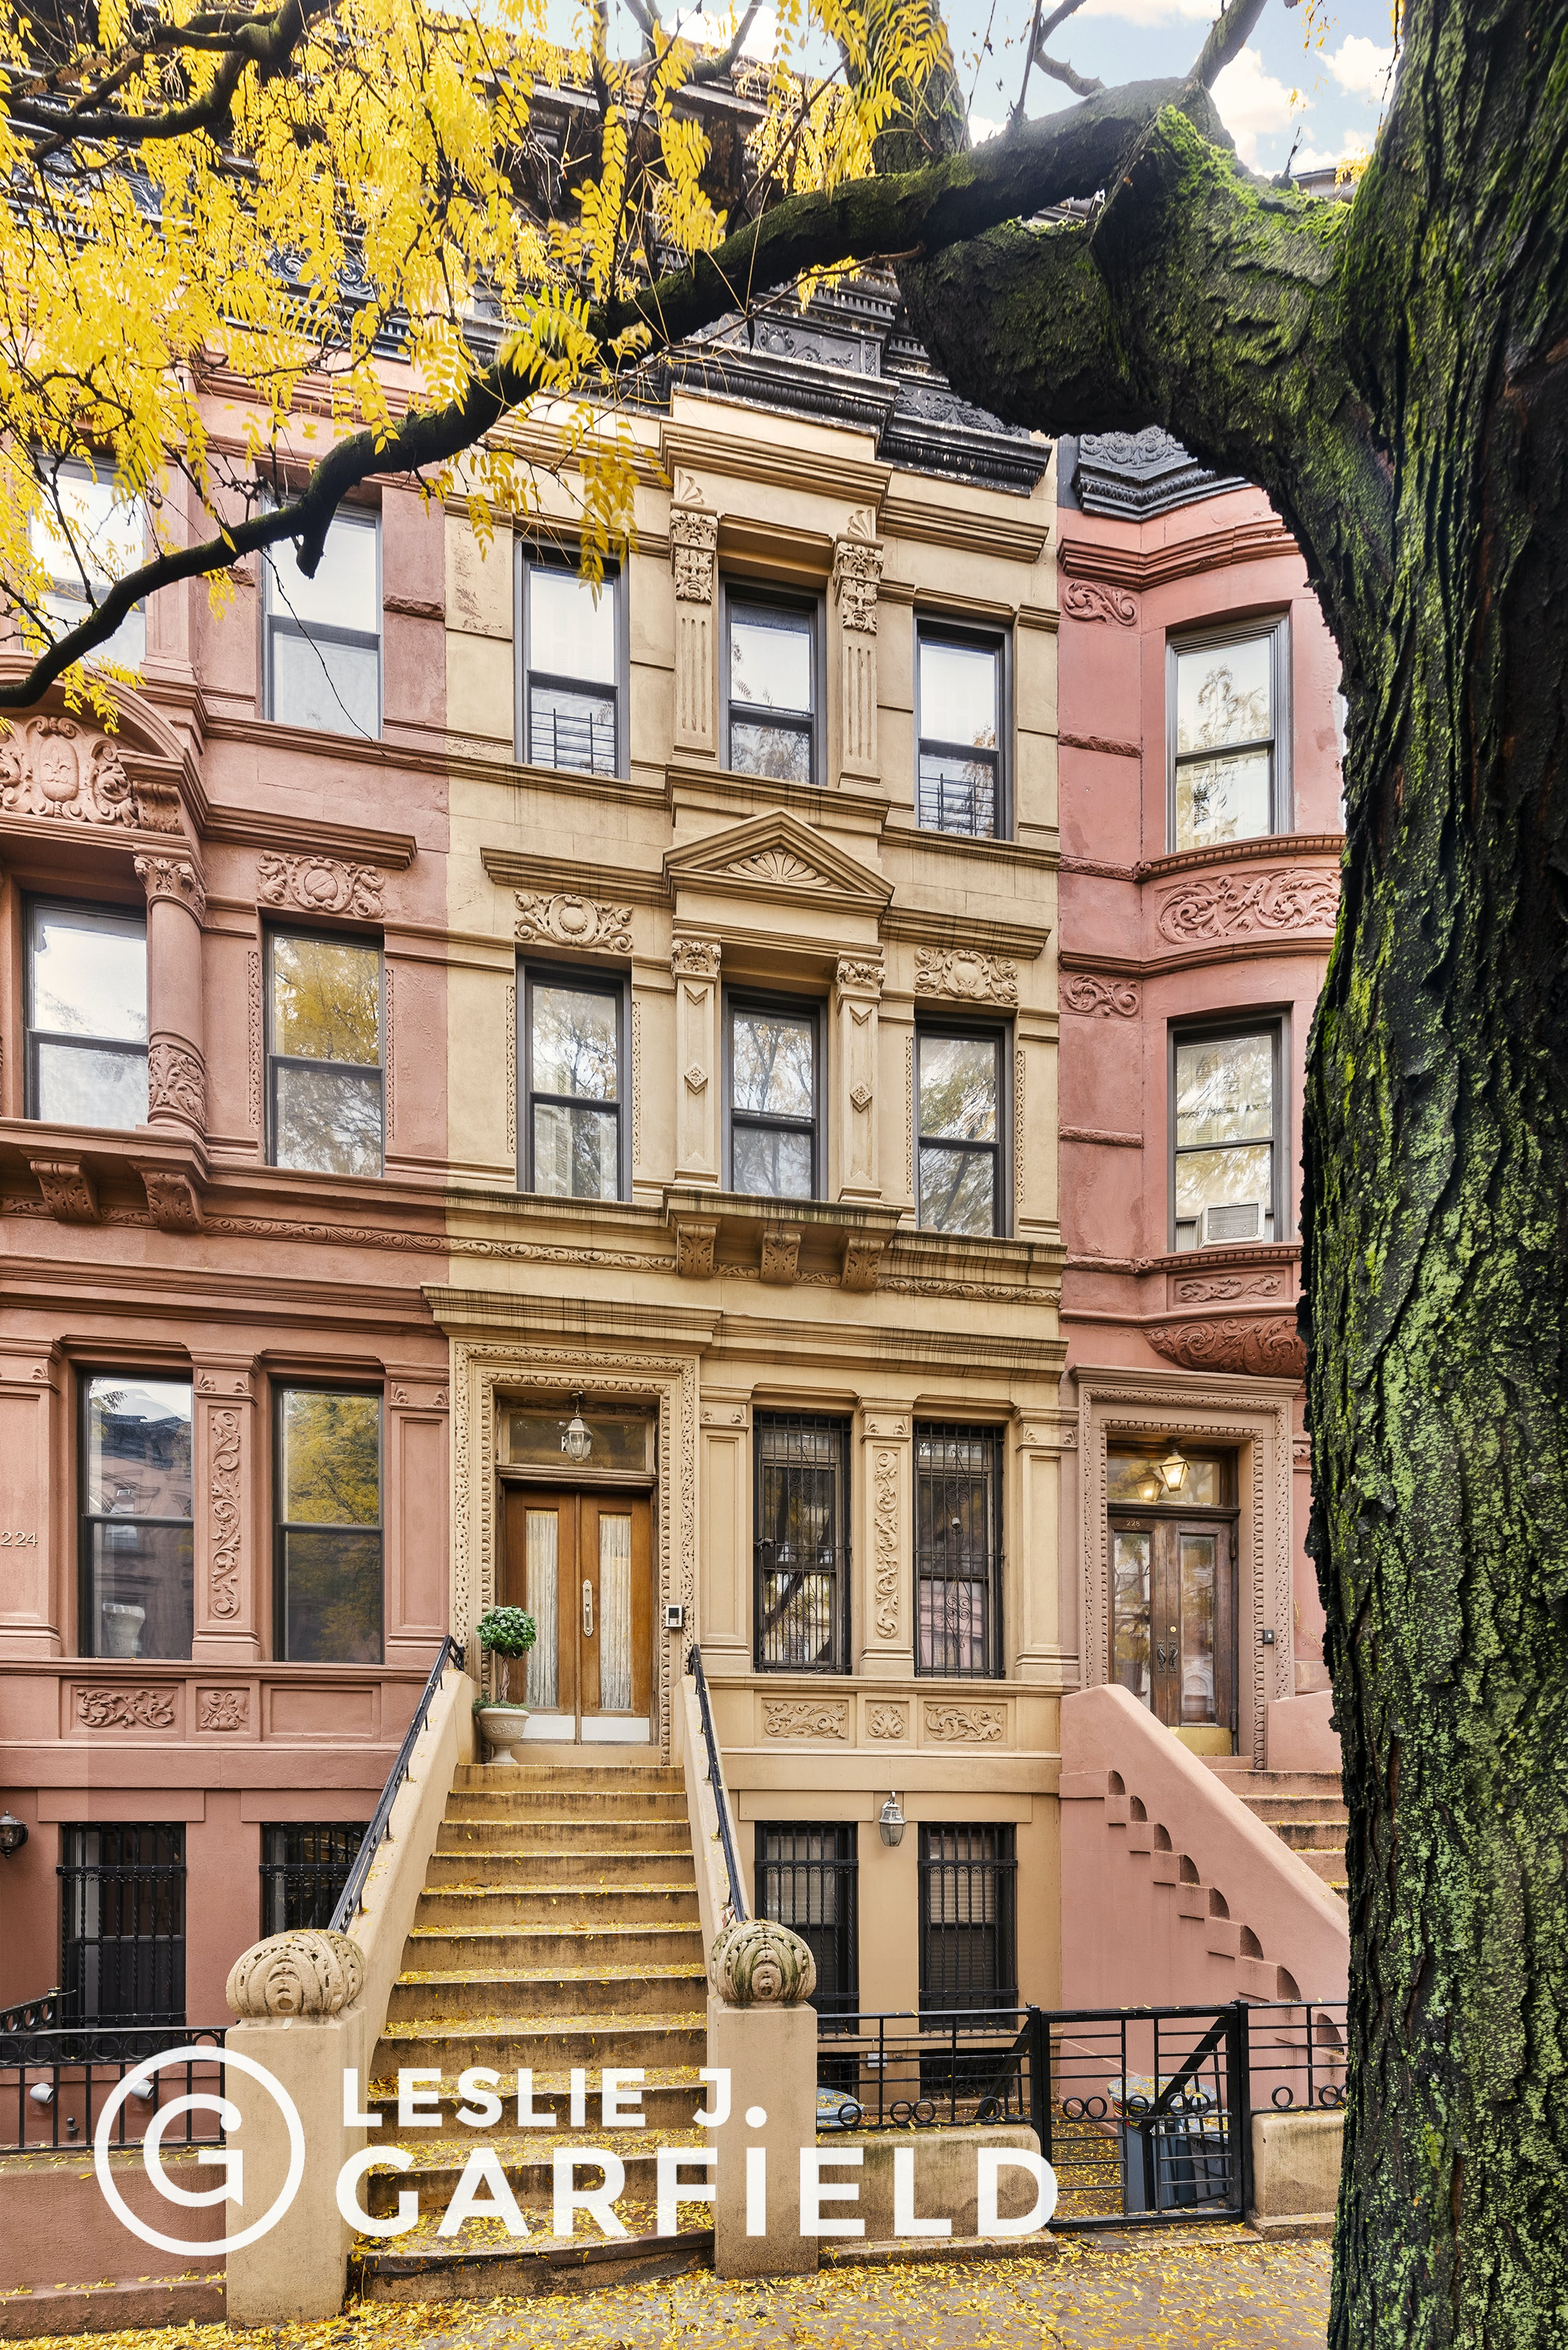 226 West 137th Street - 1dae02eb-dd72-426b-826d-0ece75c02207 - New York City Townhouse Real Estate